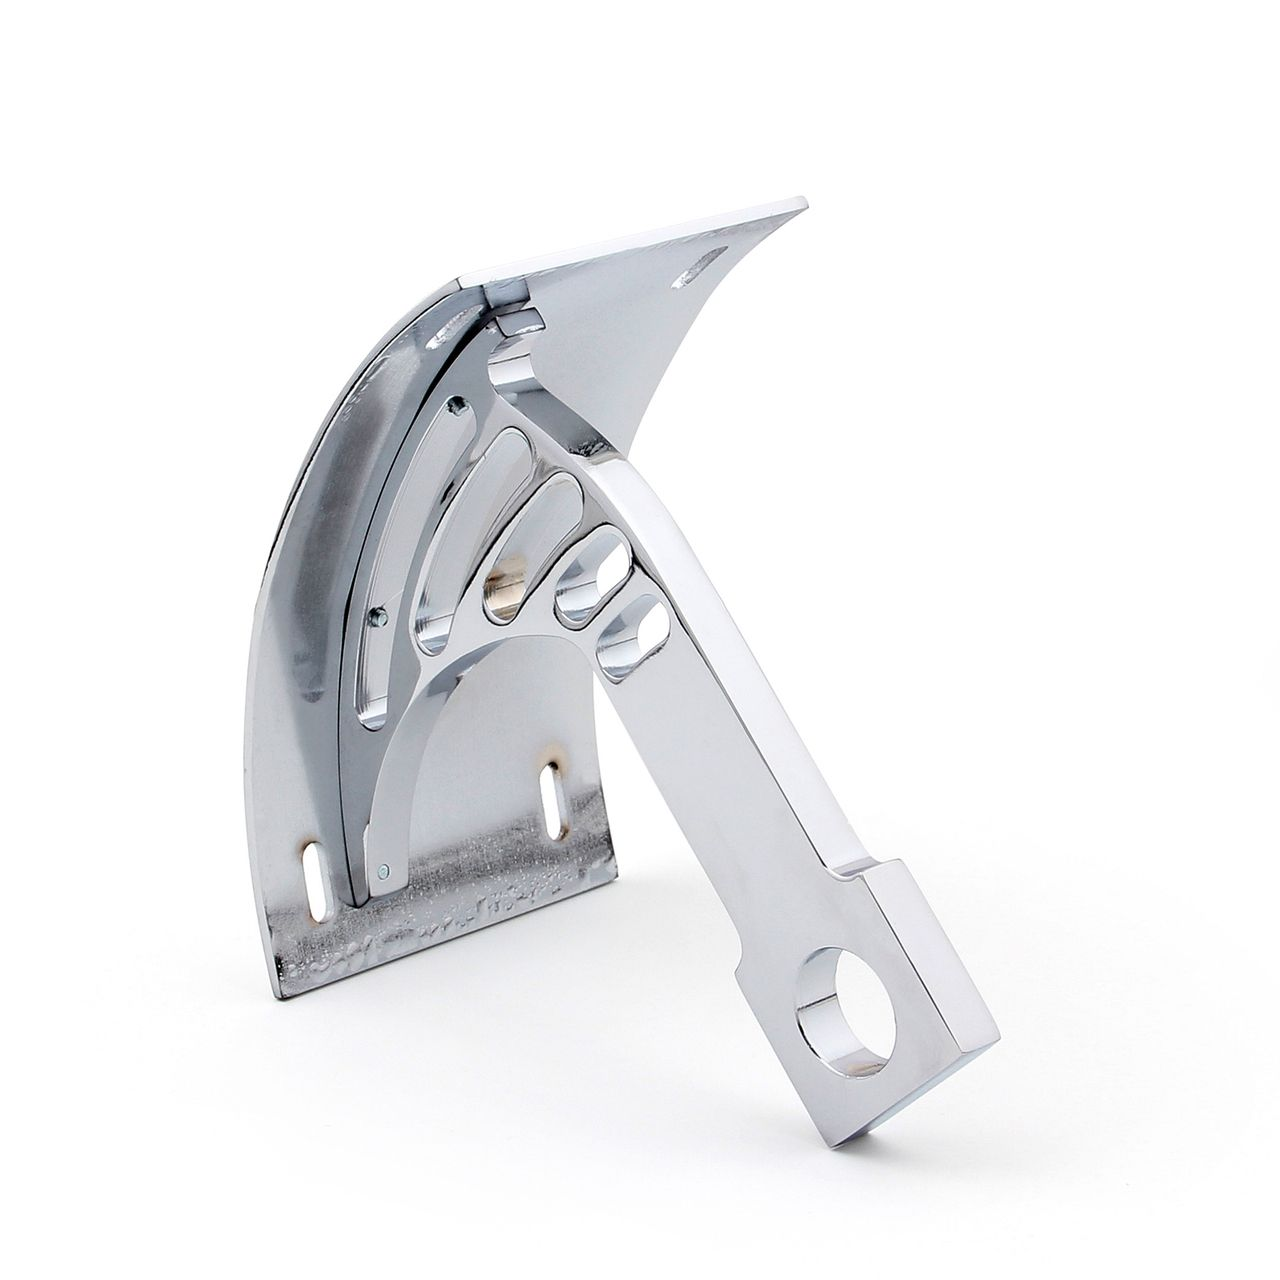 Mad Hornets - Swingarm Side Mount License Plate Tag Bracket Kawasaki Ninja ZX14 ZX12 ZX9 ZX7 ZX6 ZXR6 Curved Chrome, $56.99 (http://www.madhornets.com/swingarm-mount-license-plate-tag-bracket-kawasaki-ninja-zx14-zx12-zx9-zx7-zx6-zxr6-curved-chrome/)